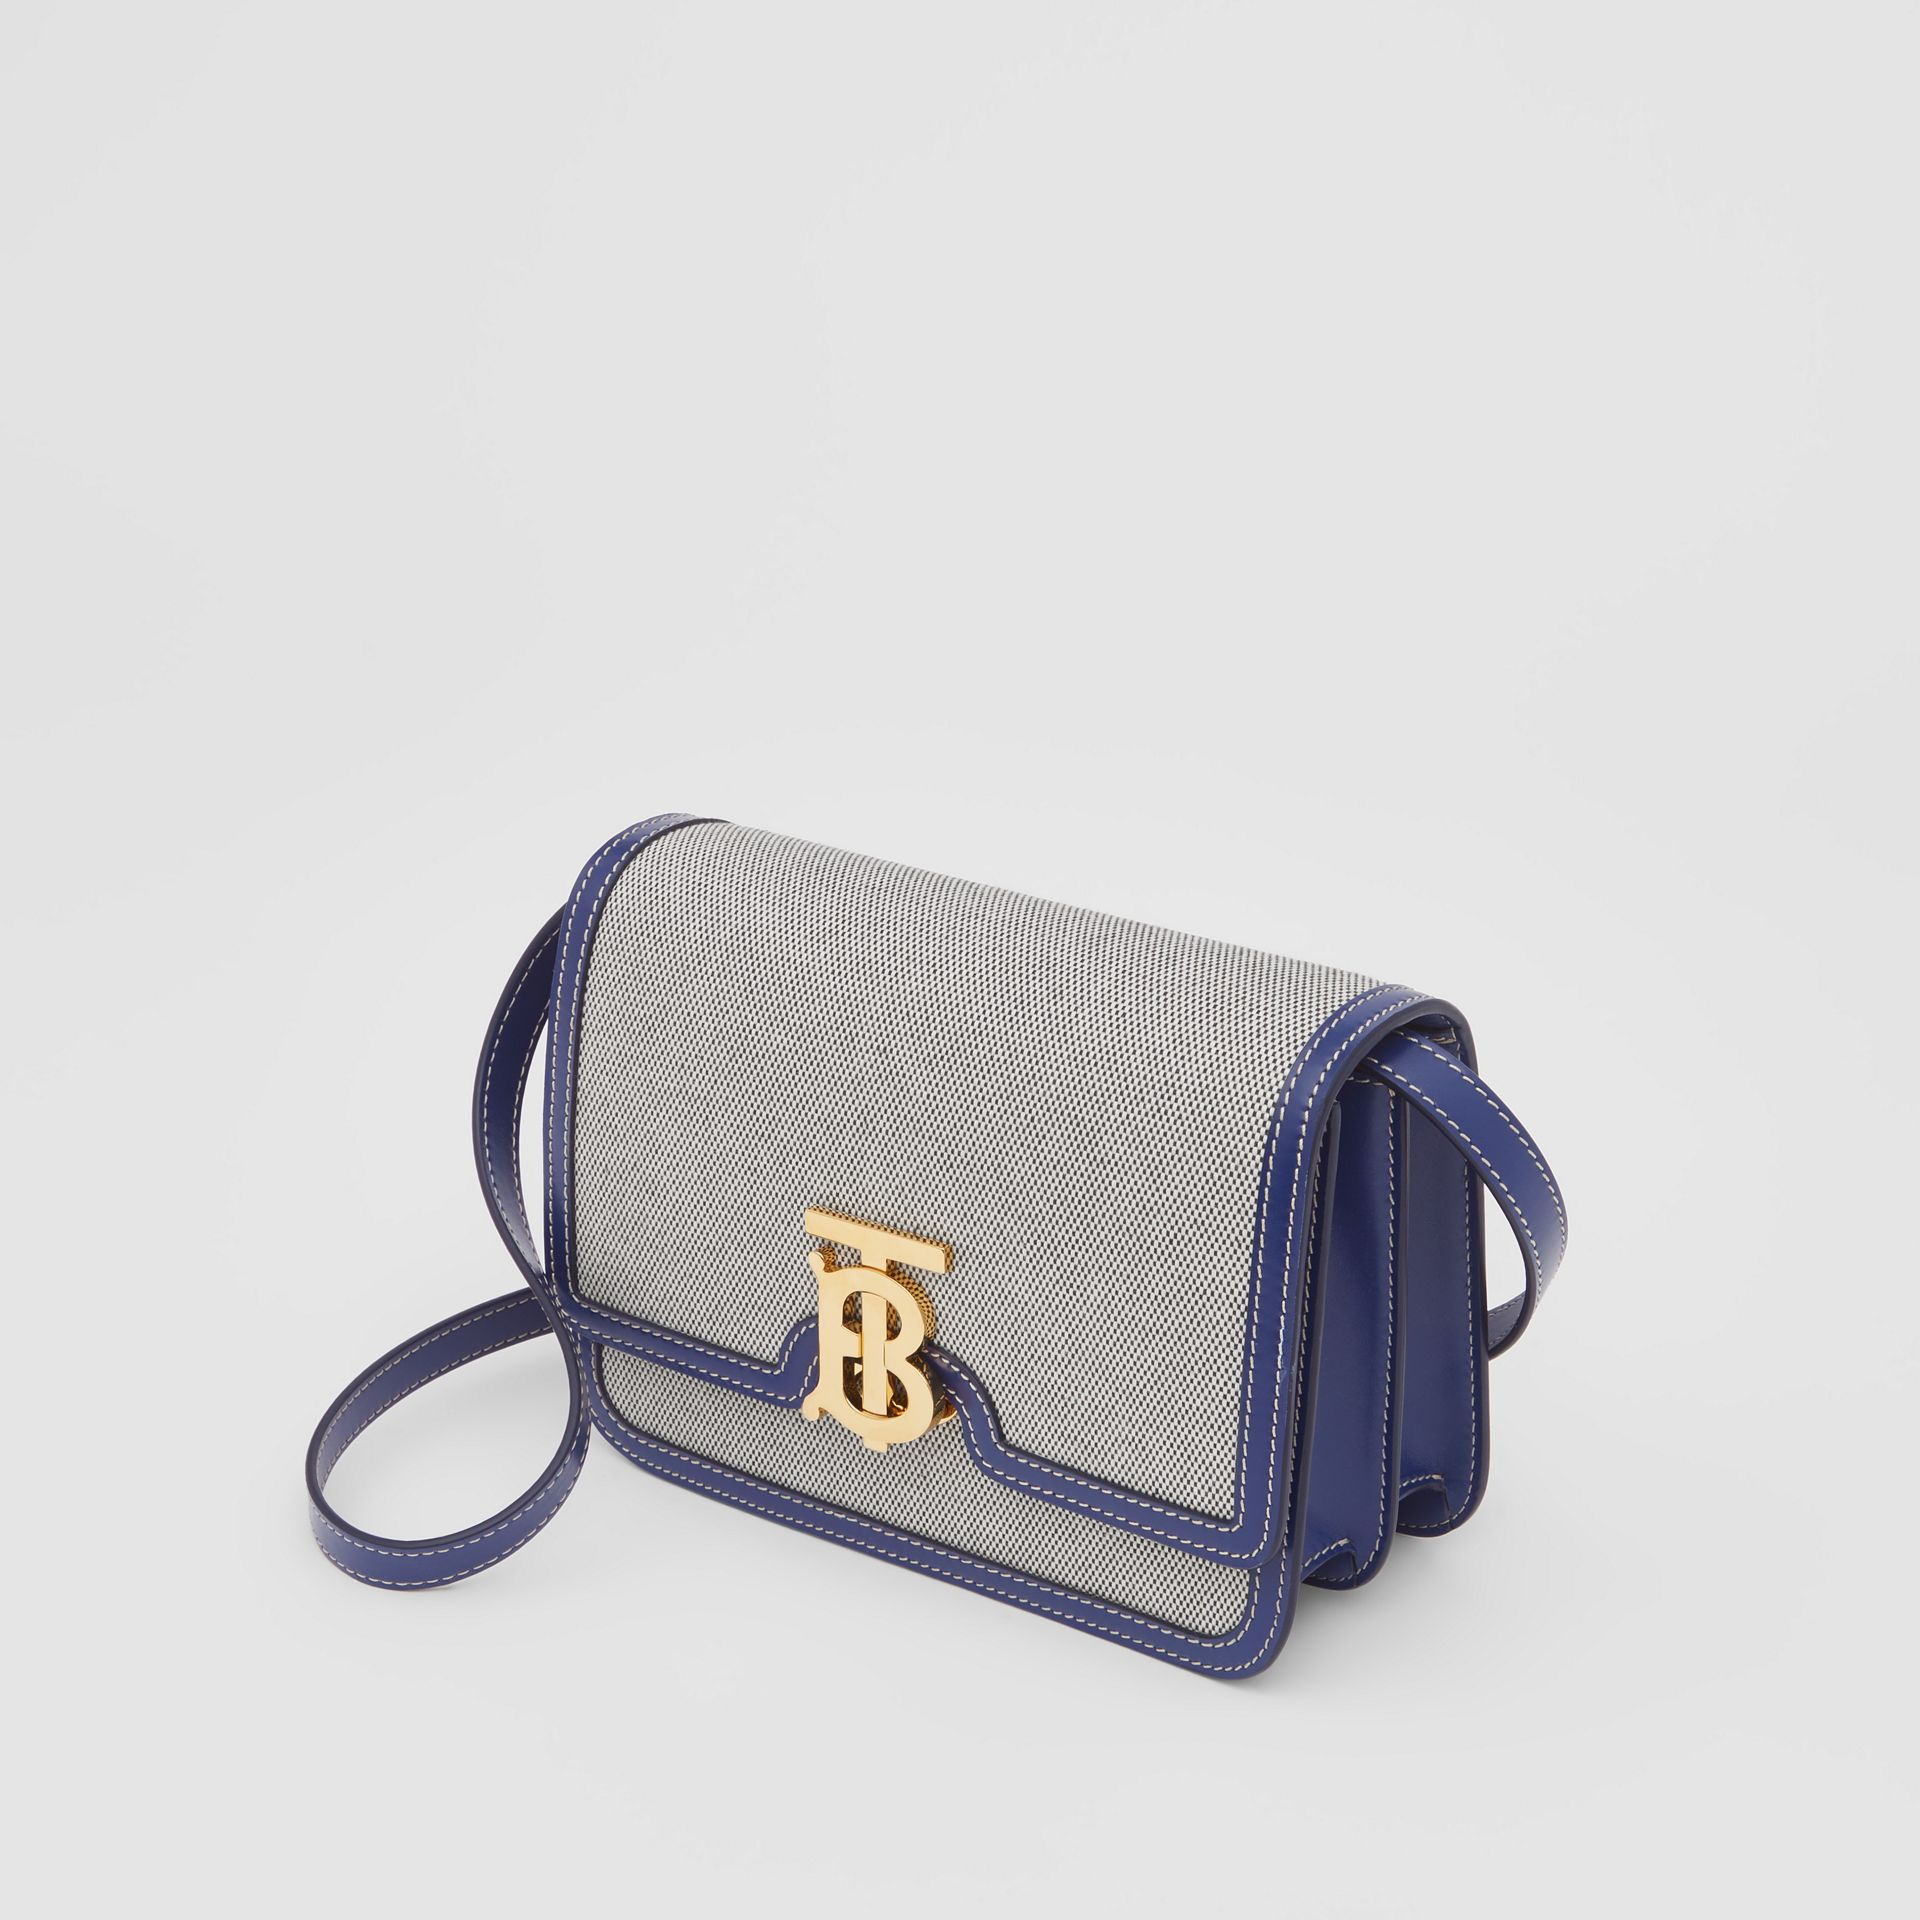 Small Two-tone Canvas and Leather TB Bag in Ink Navy - Women | Burberry - gallery image 3